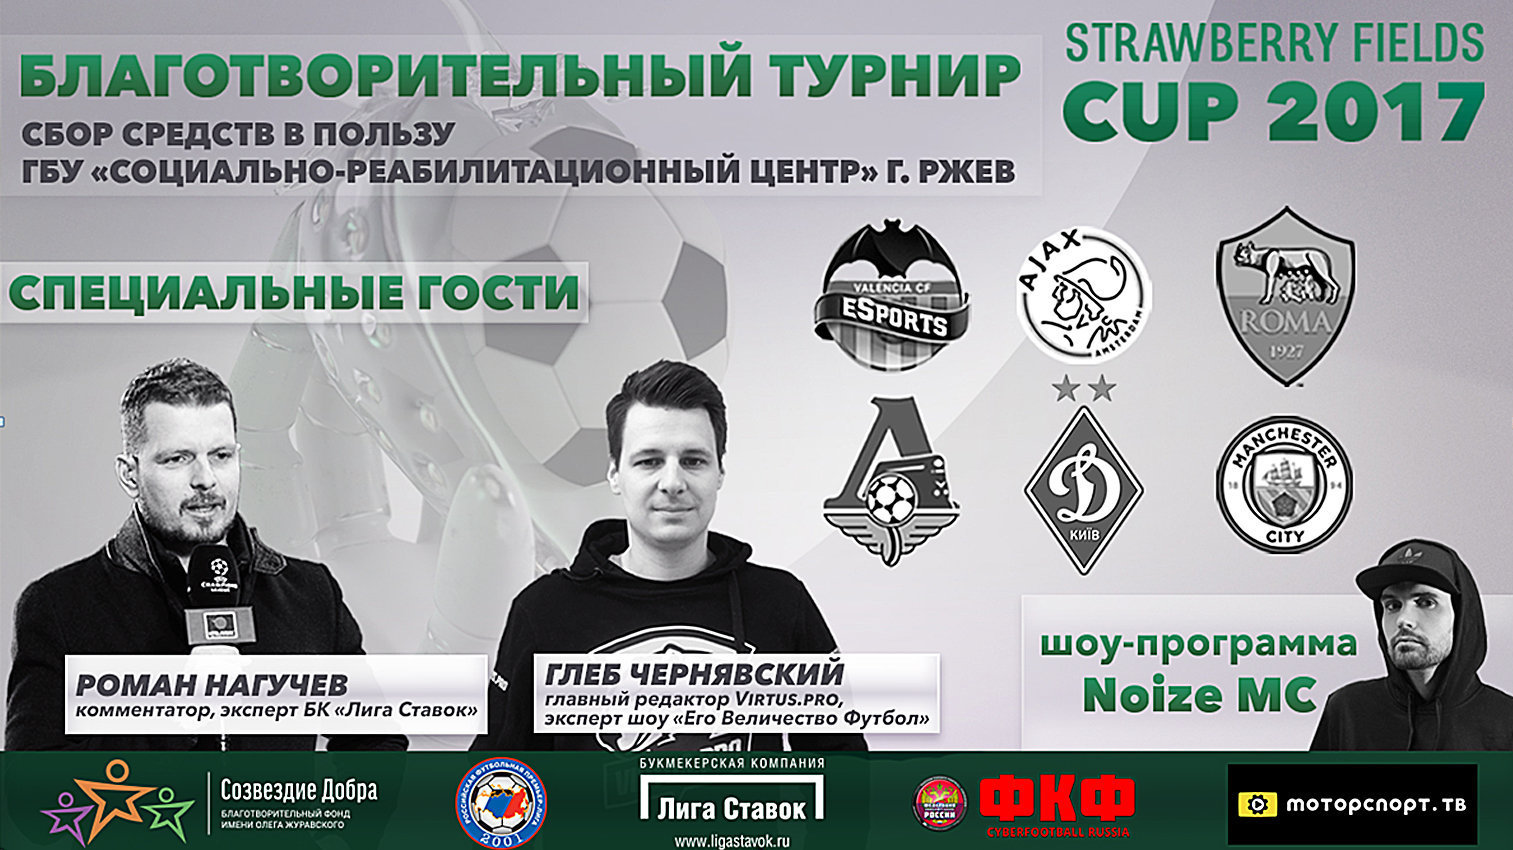 Strawberry Fields Cup 2017